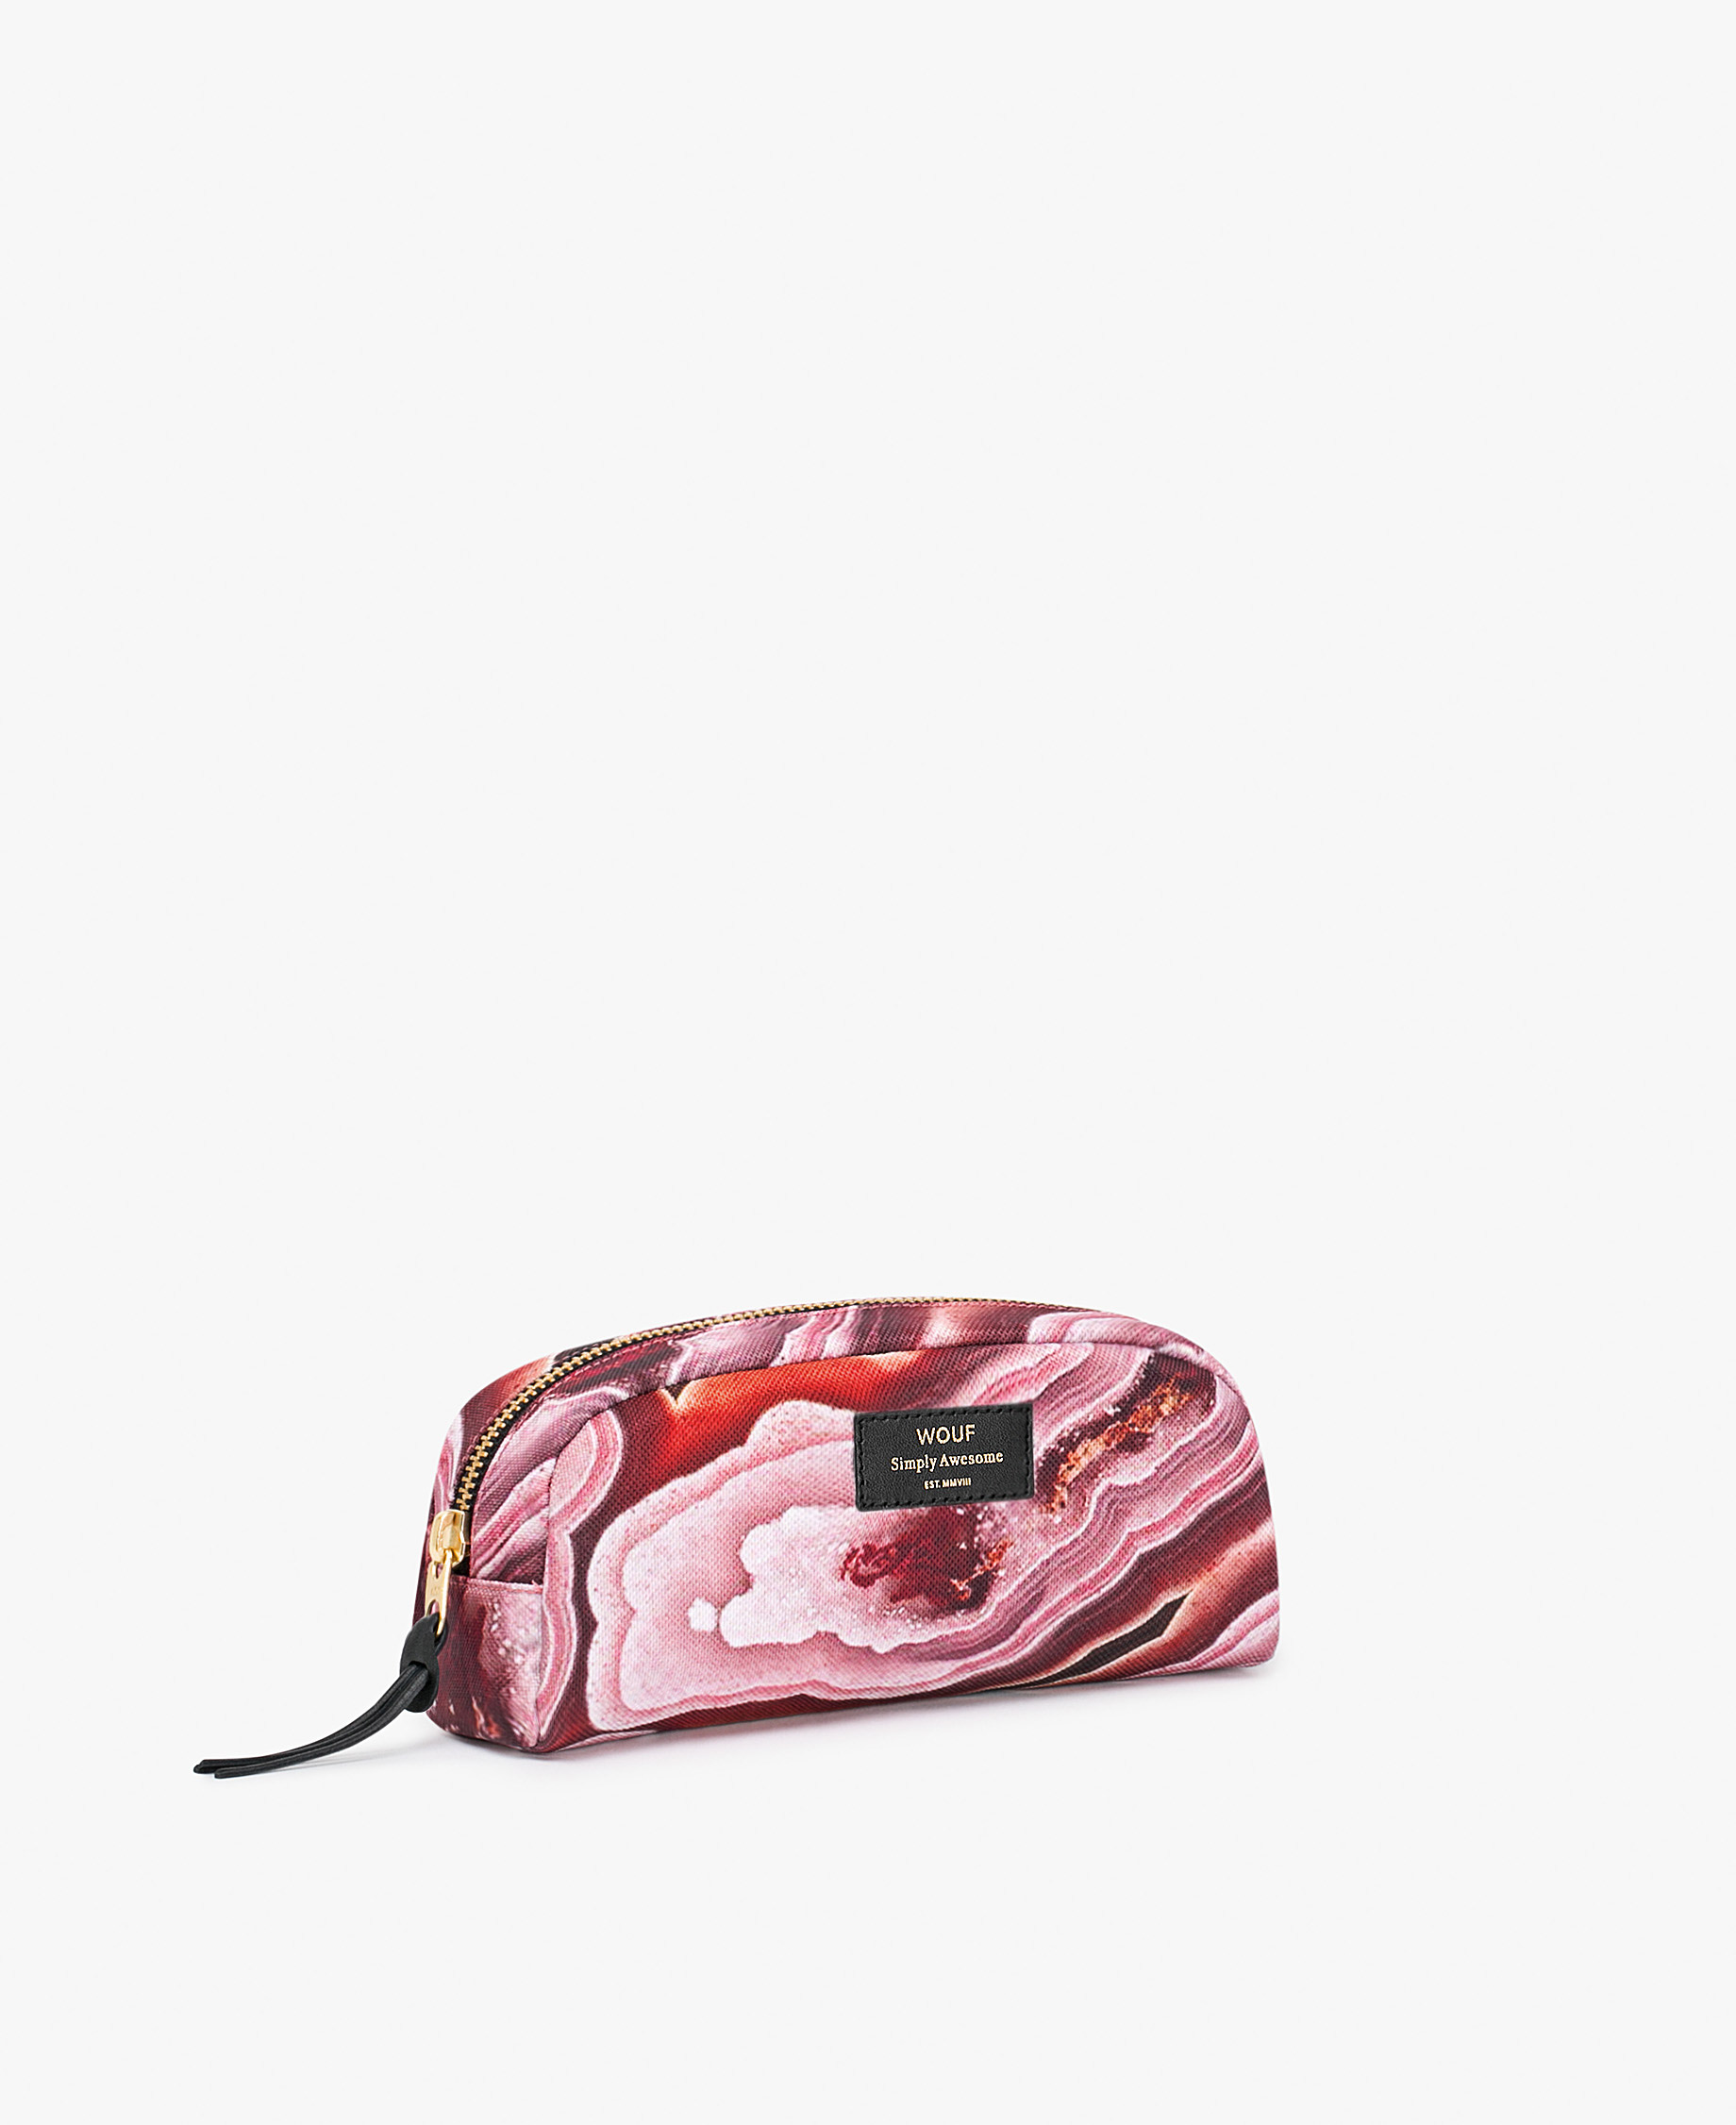 pink toiletry bag for young woman